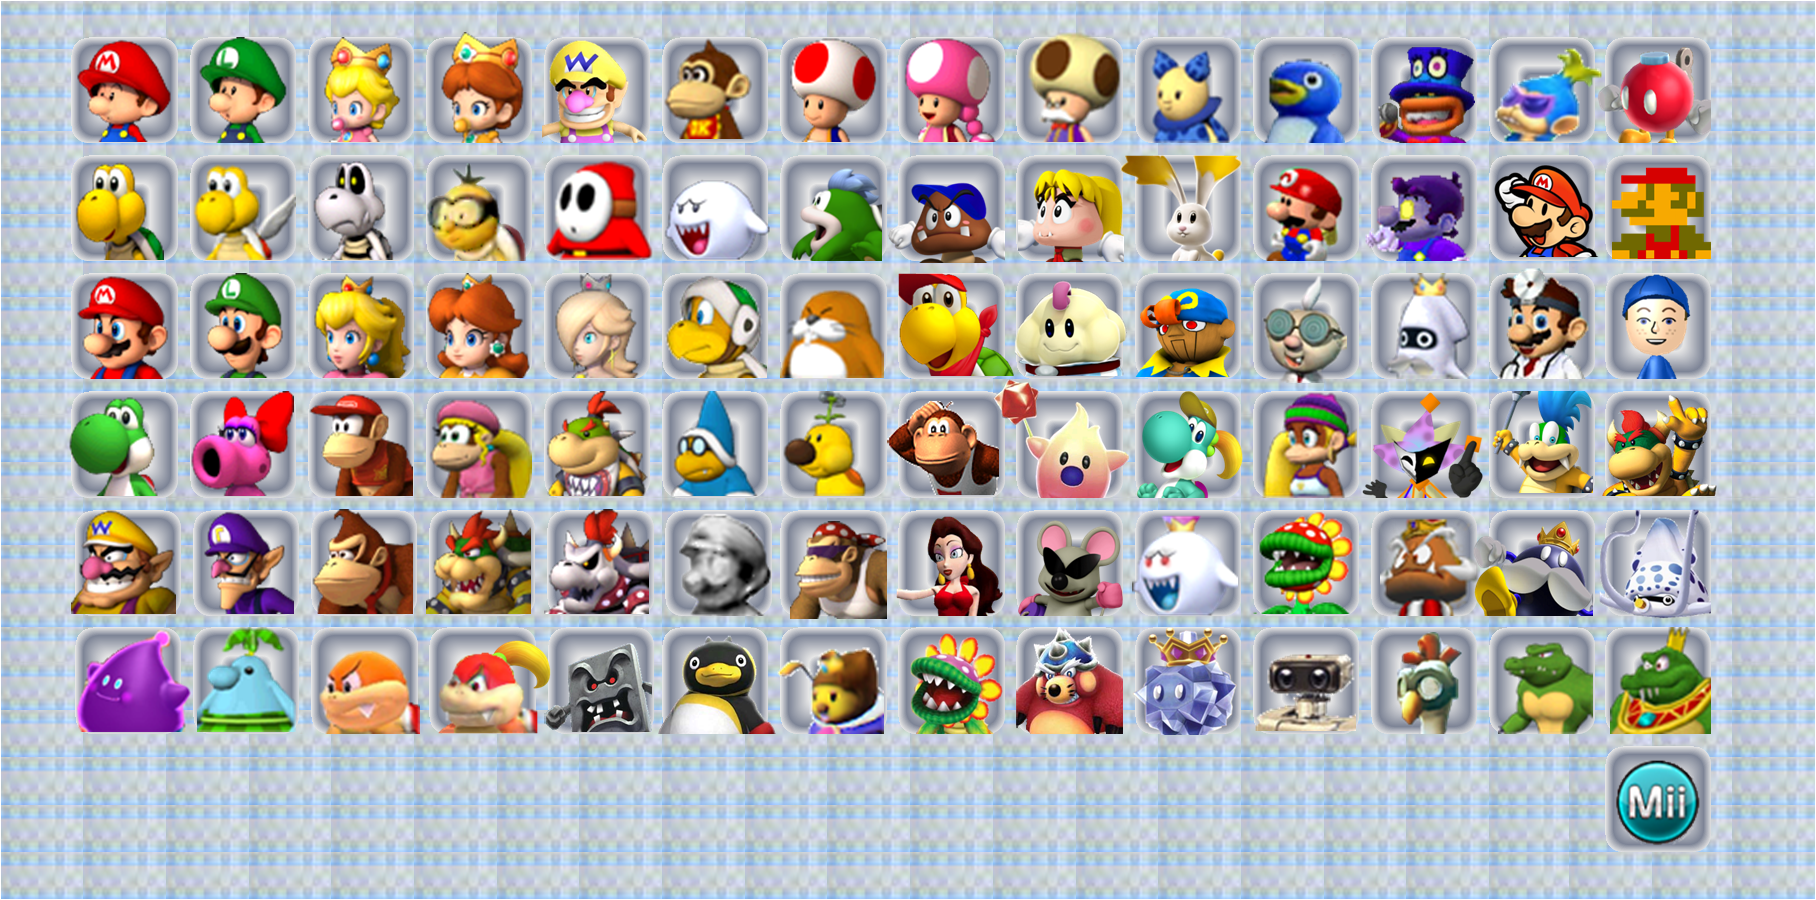 File Blast How To Unlock Characters On Mario Kart Wii With 2 Players